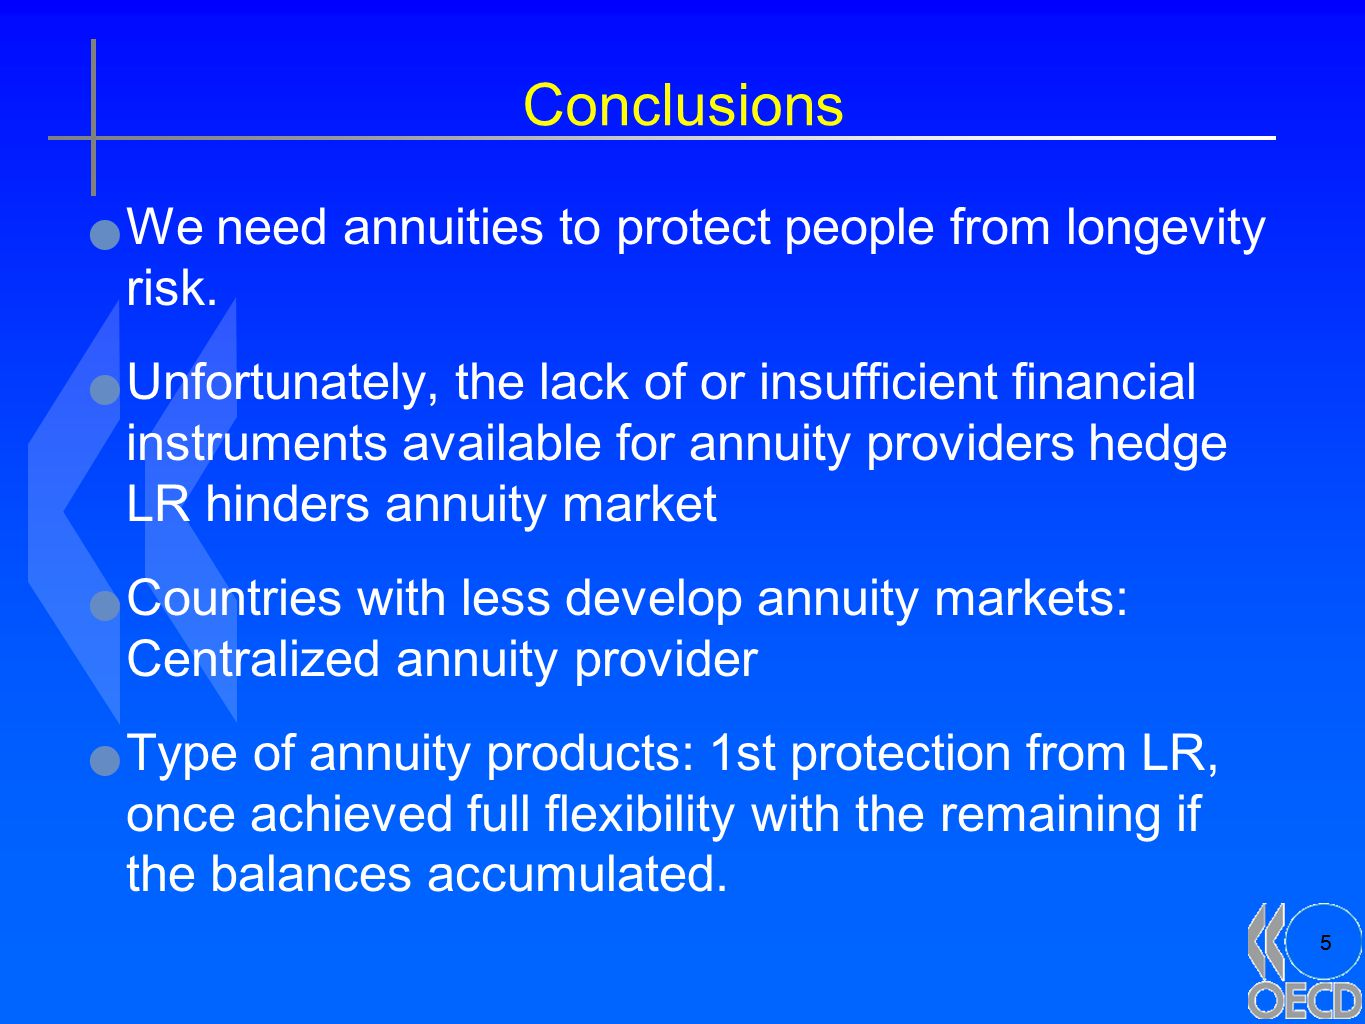 5 Conclusions We need annuities to protect people from longevity risk. Unfortunately, the lack of or insufficient financial instruments available for